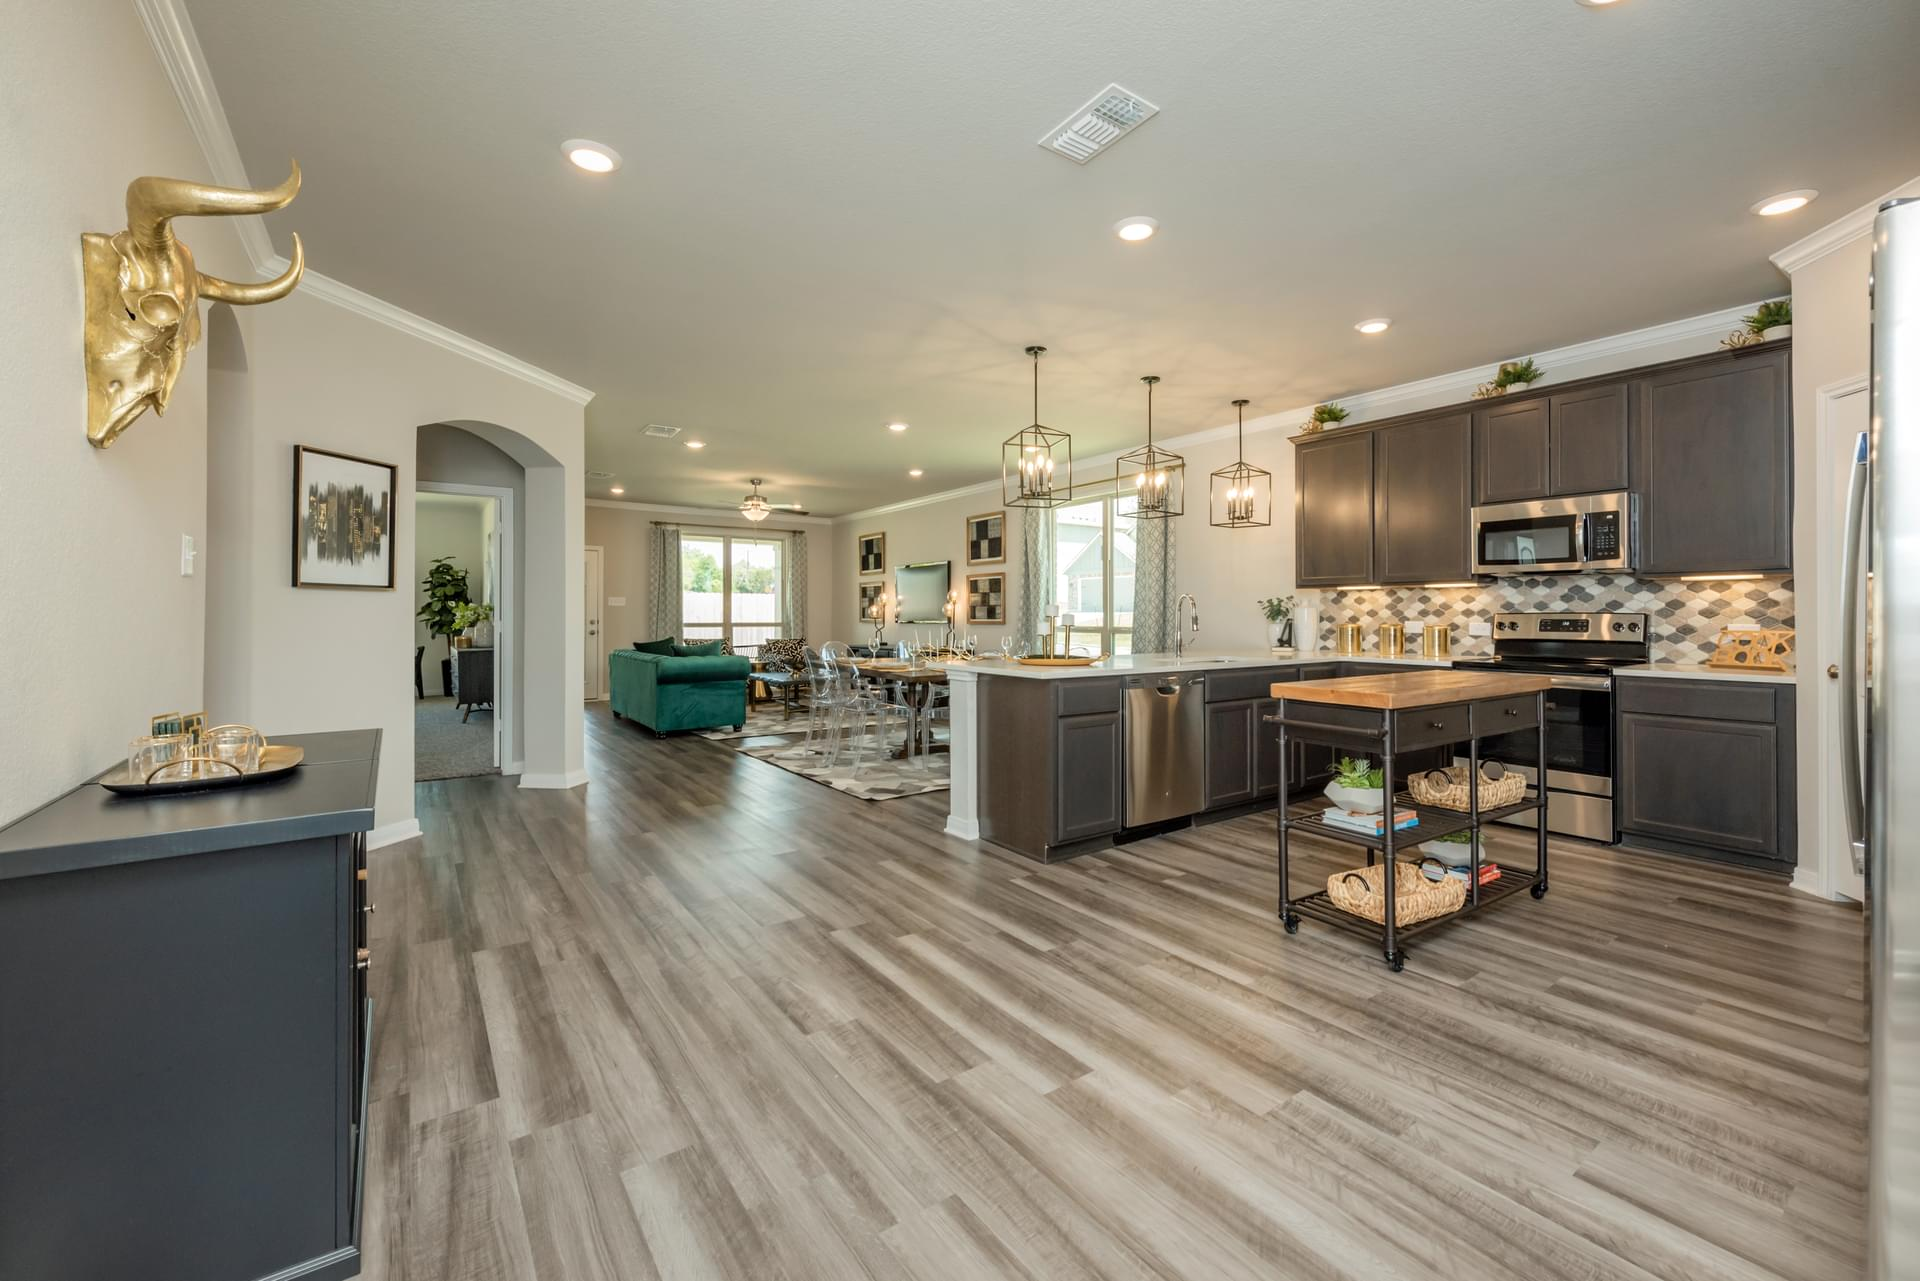 3,176sf New Home in Waco, TX